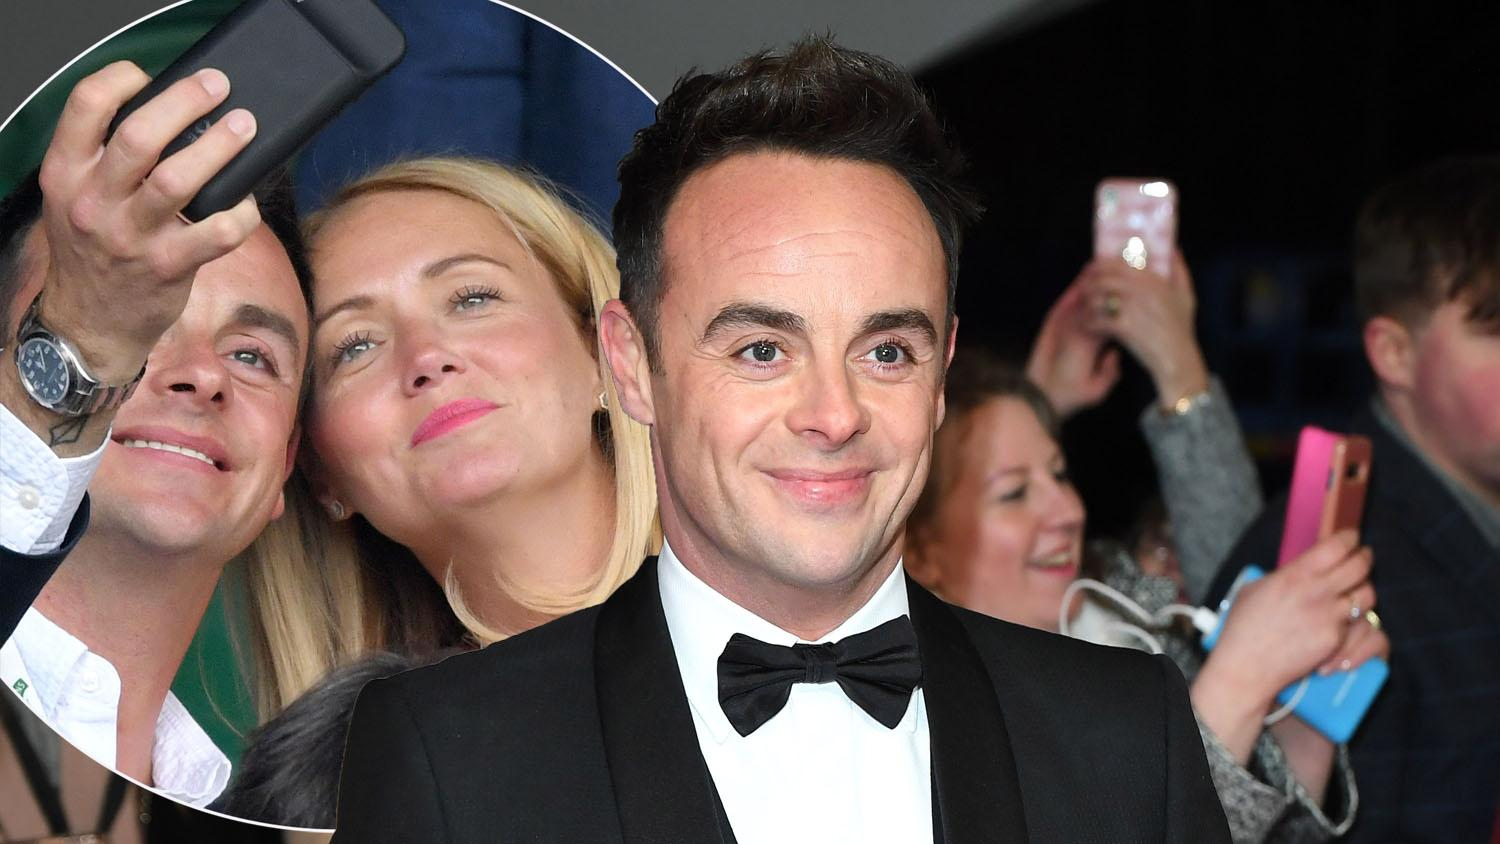 Ant Mcpartlin Reveals Adorable Way He Proposed To Anne Marie Corbett On Christmas Eve